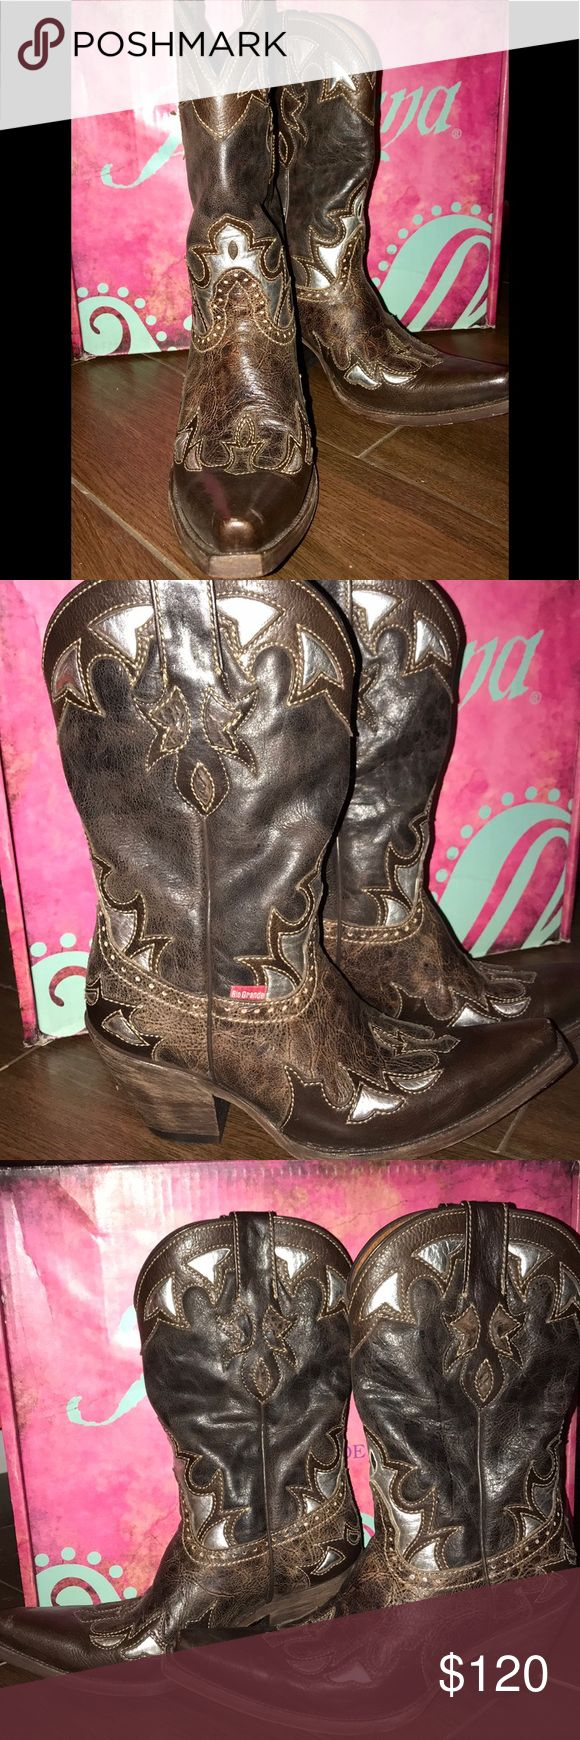 Artesana Rio Grande Cowboy boots🤠 Beautiful brown leather cowboy boots! Hand stitched with silver accents! Great for jeans, shorts or skirts!!! Worn 2 times for rodeo...Great condition Shoes